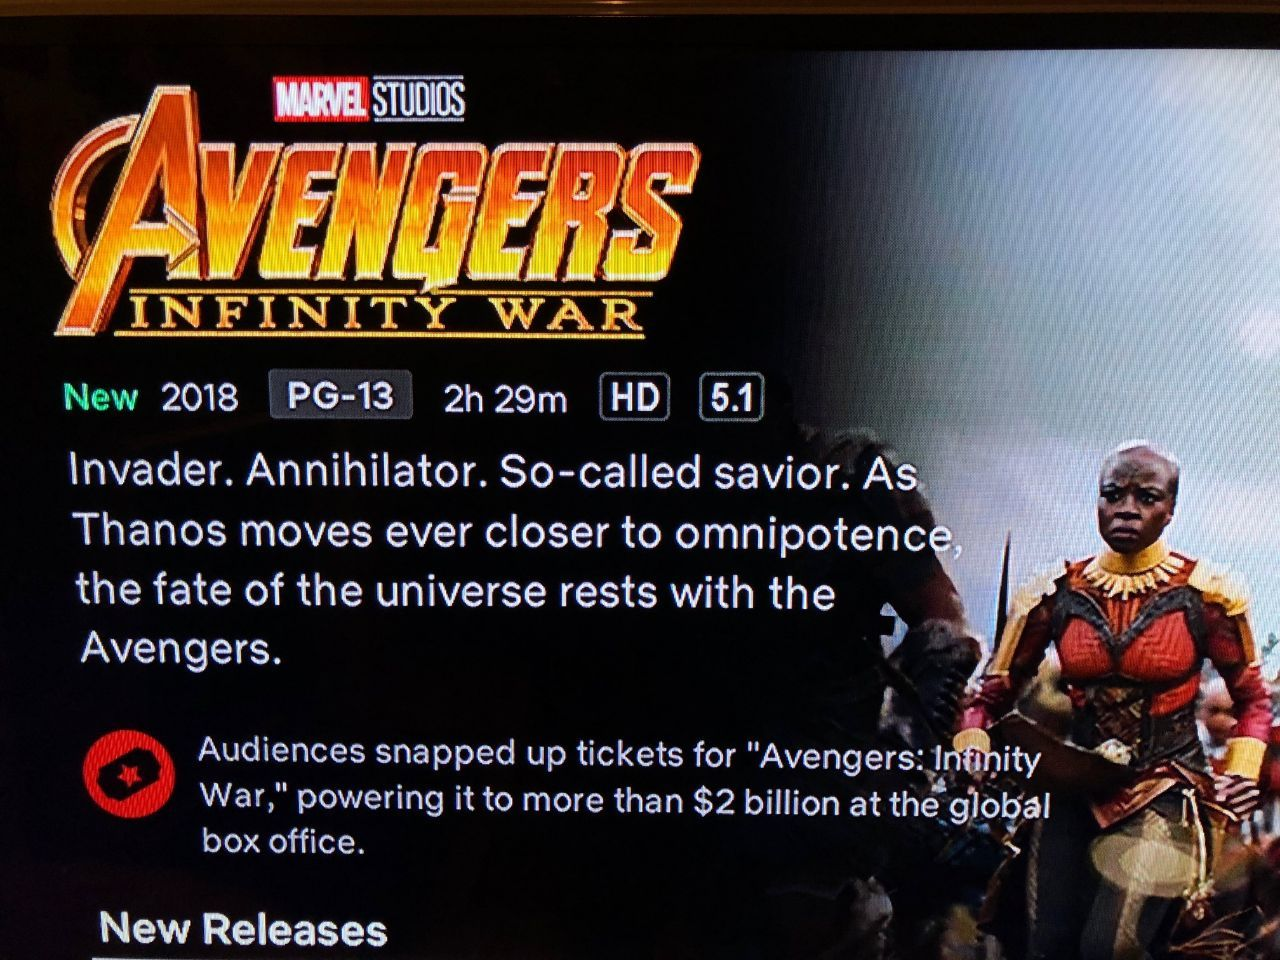 new-infinity-war-description-netflix